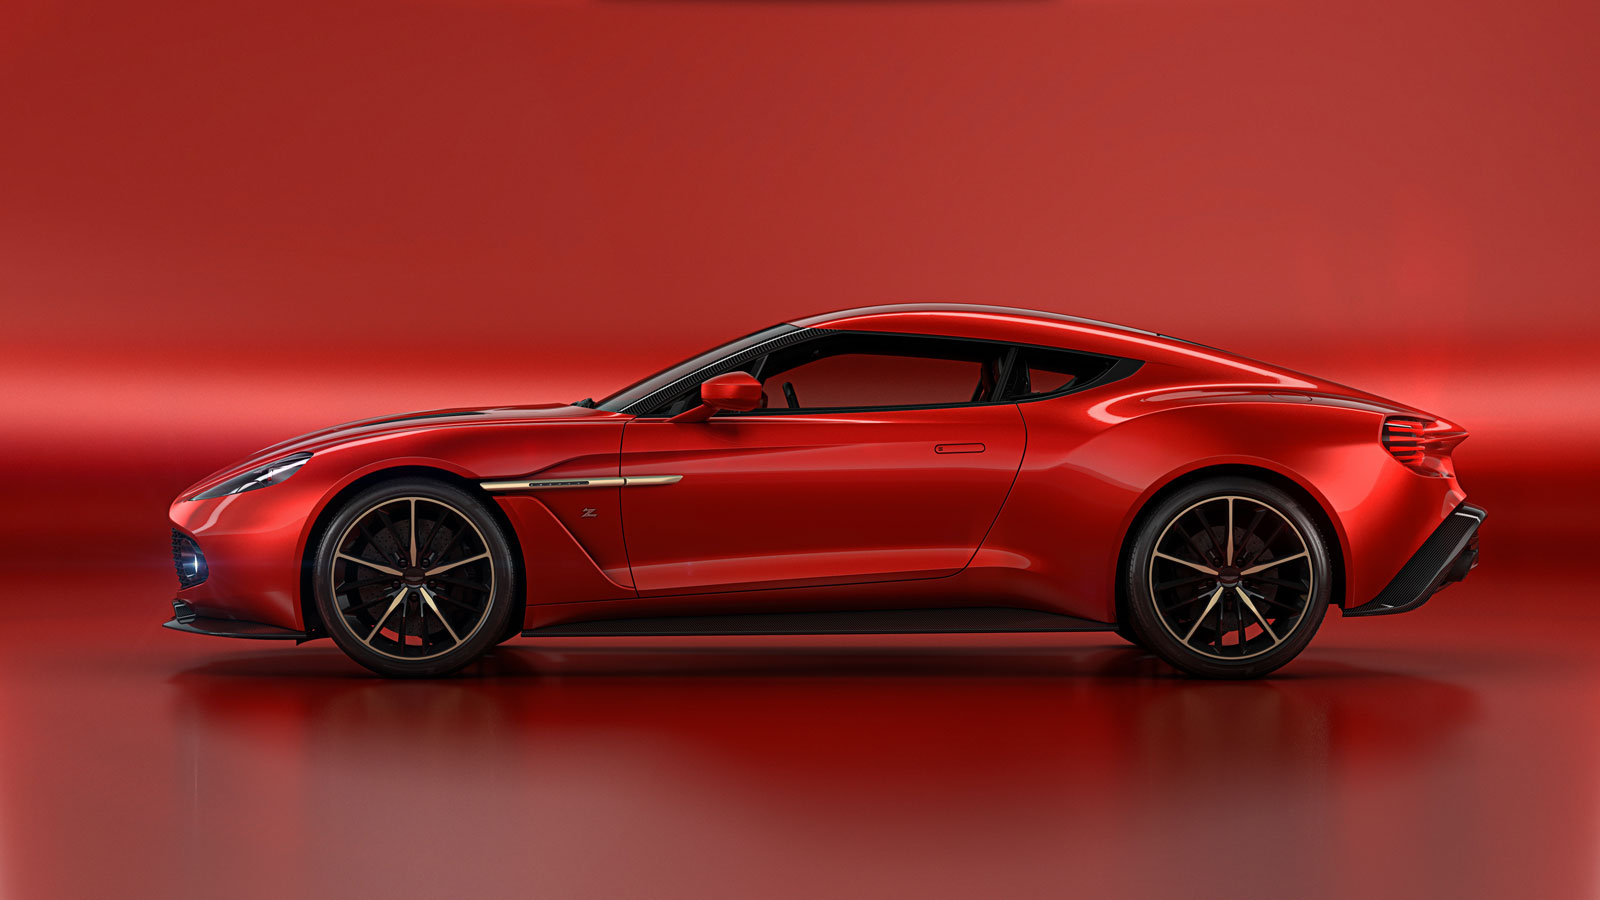 Aston Martin Vanquish Zagato Concept Side View Car Body Design